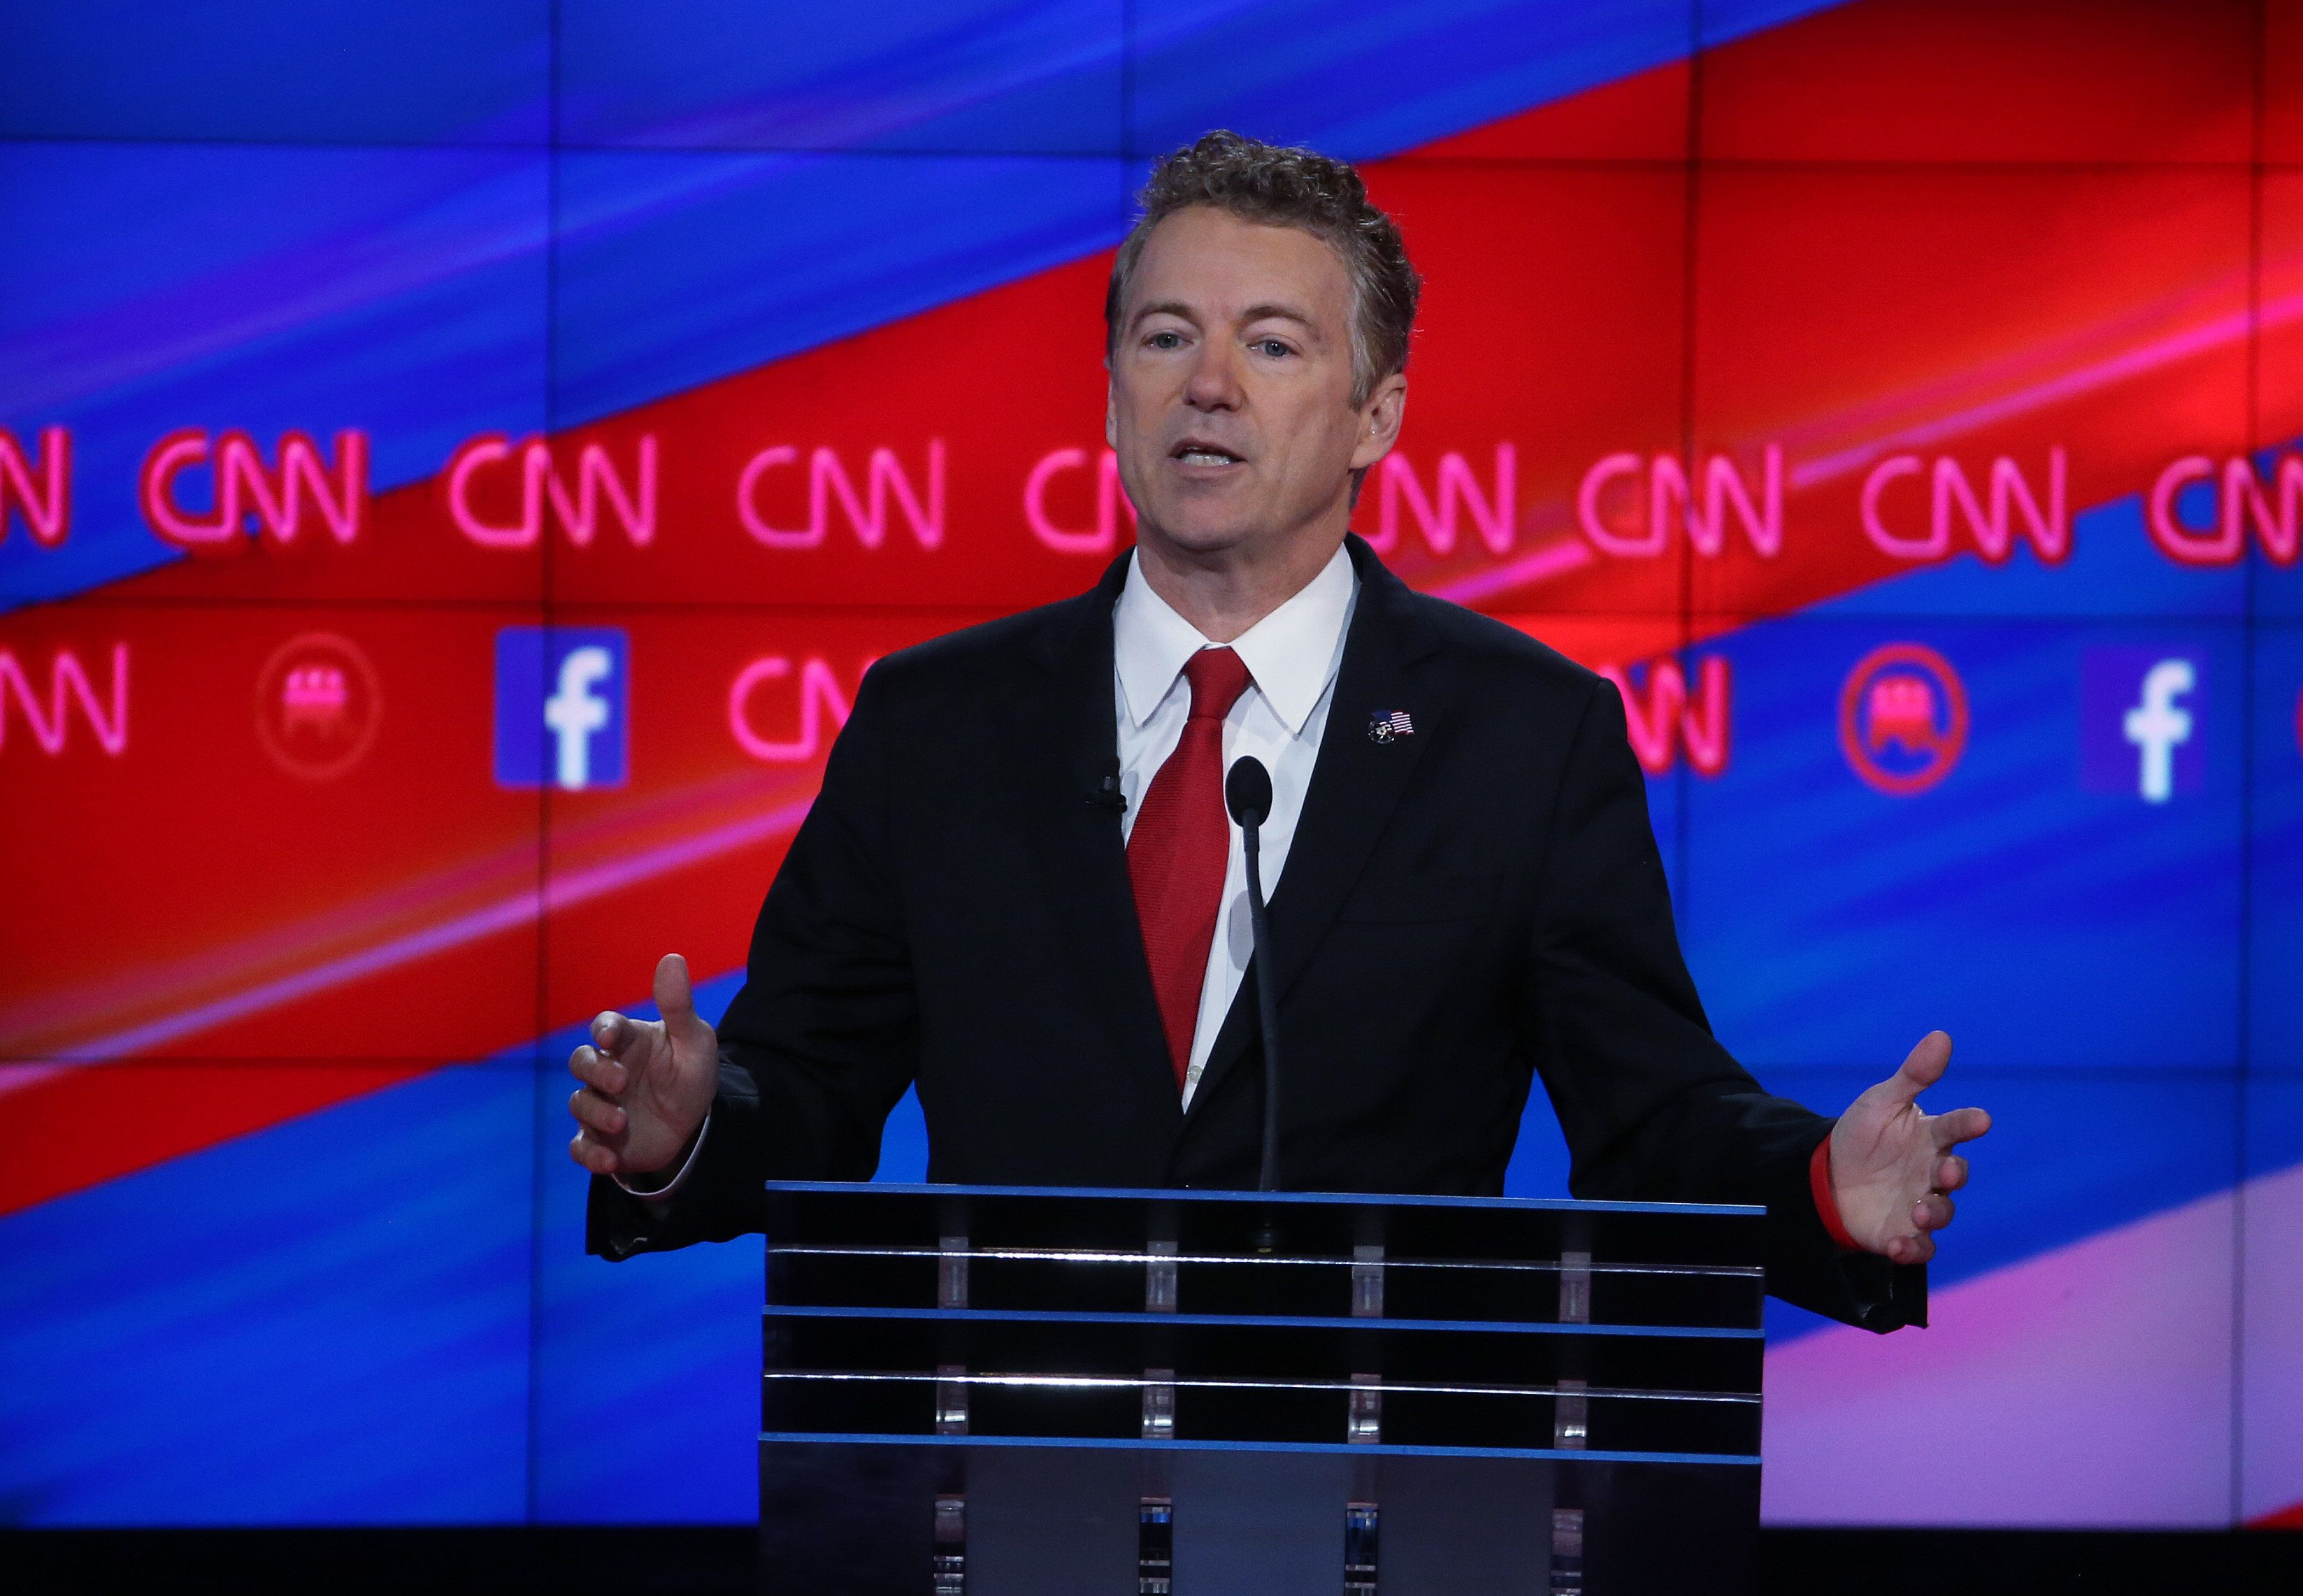 LAS VEGAS, NV - DECEMBER 15:  Republican presidential candidate U.S. Sen. Rand Paul (R-KY) speaks during the CNN Republican presidential debate on December 15, 2015 in Las Vegas, Nevada. This is the last GOP debate of the year, with U.S. Sen. Ted Cruz (R-TX) gaining in the polls in Iowa and other early voting states and Donald Trump rising in national polls.  (Photo by Justin Sullivan/Getty Images)